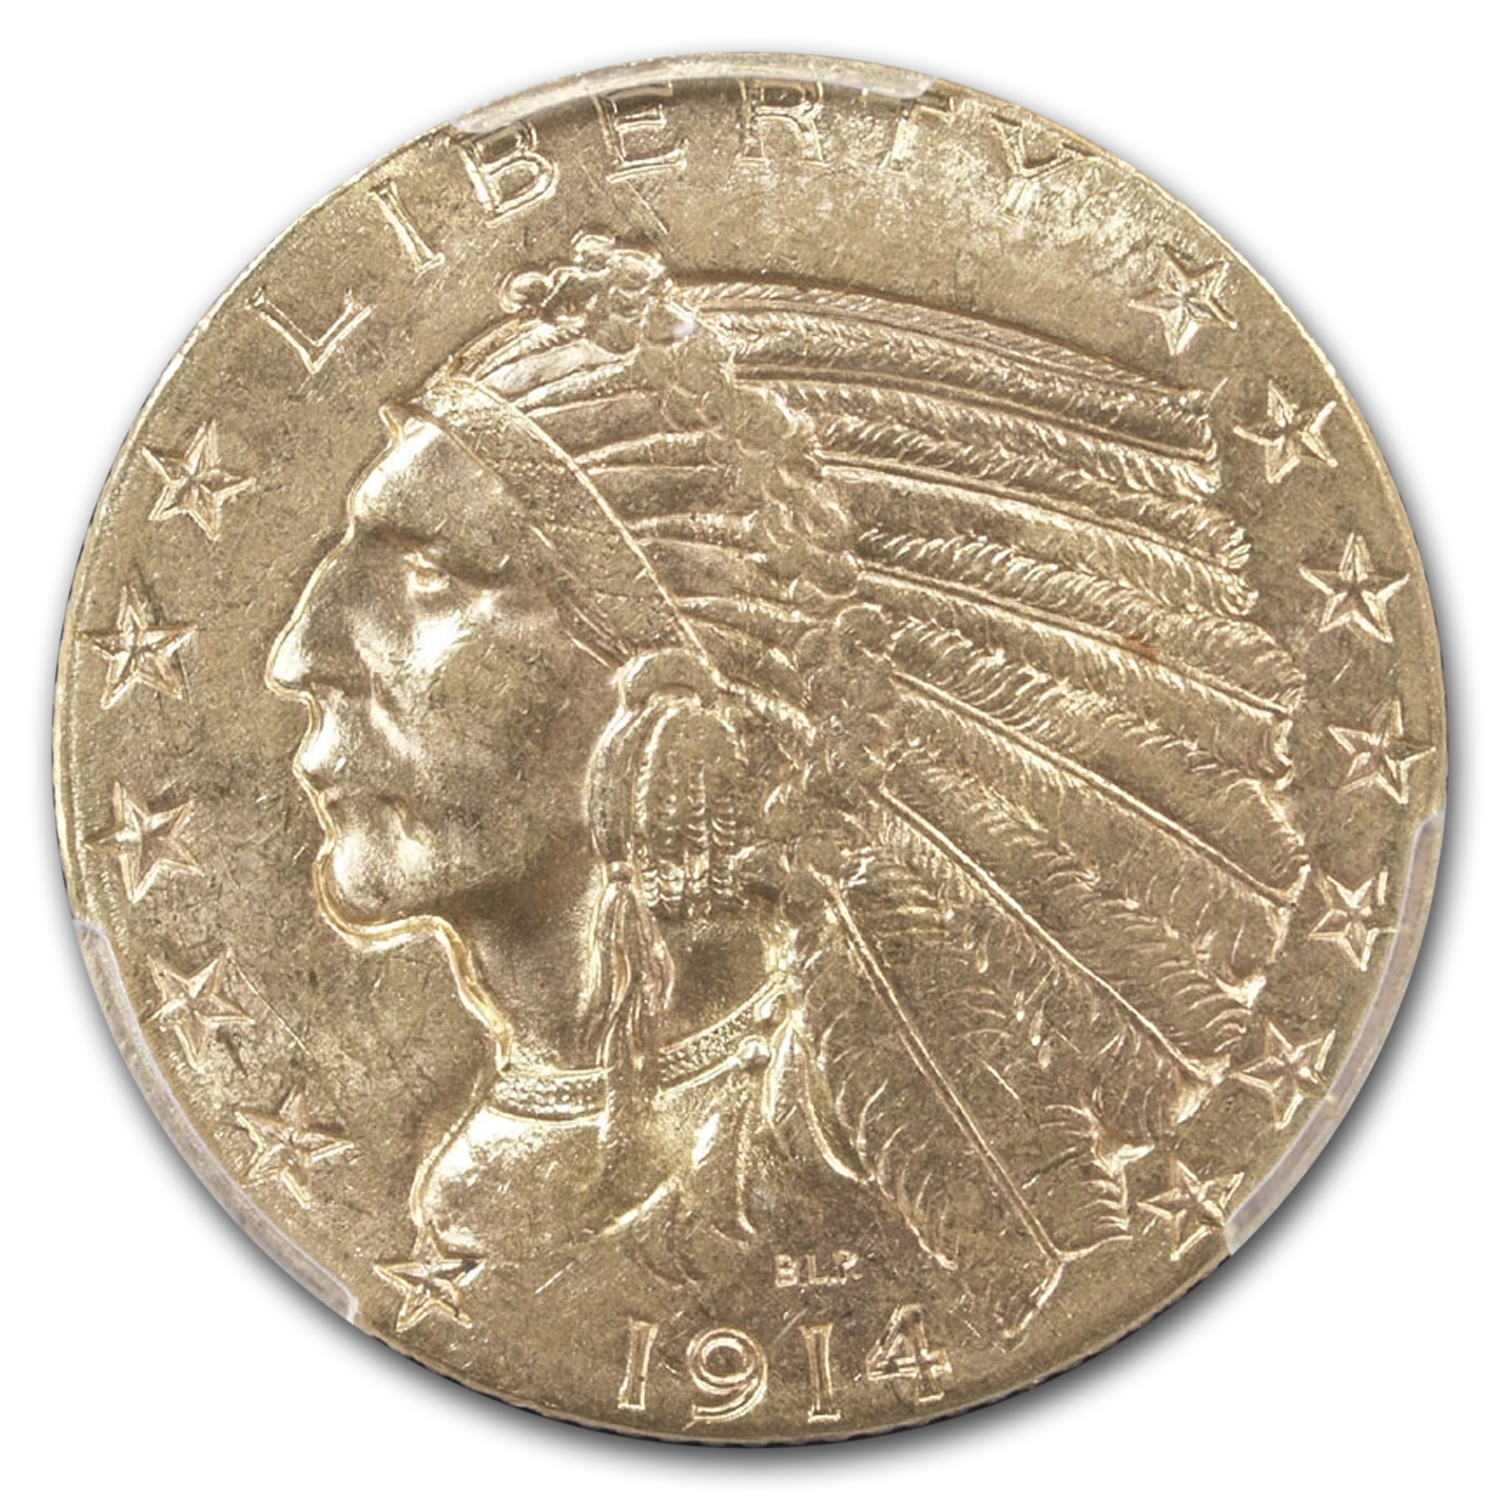 1914-S $5 Indian Gold Half Eagle MS-62 PCGS